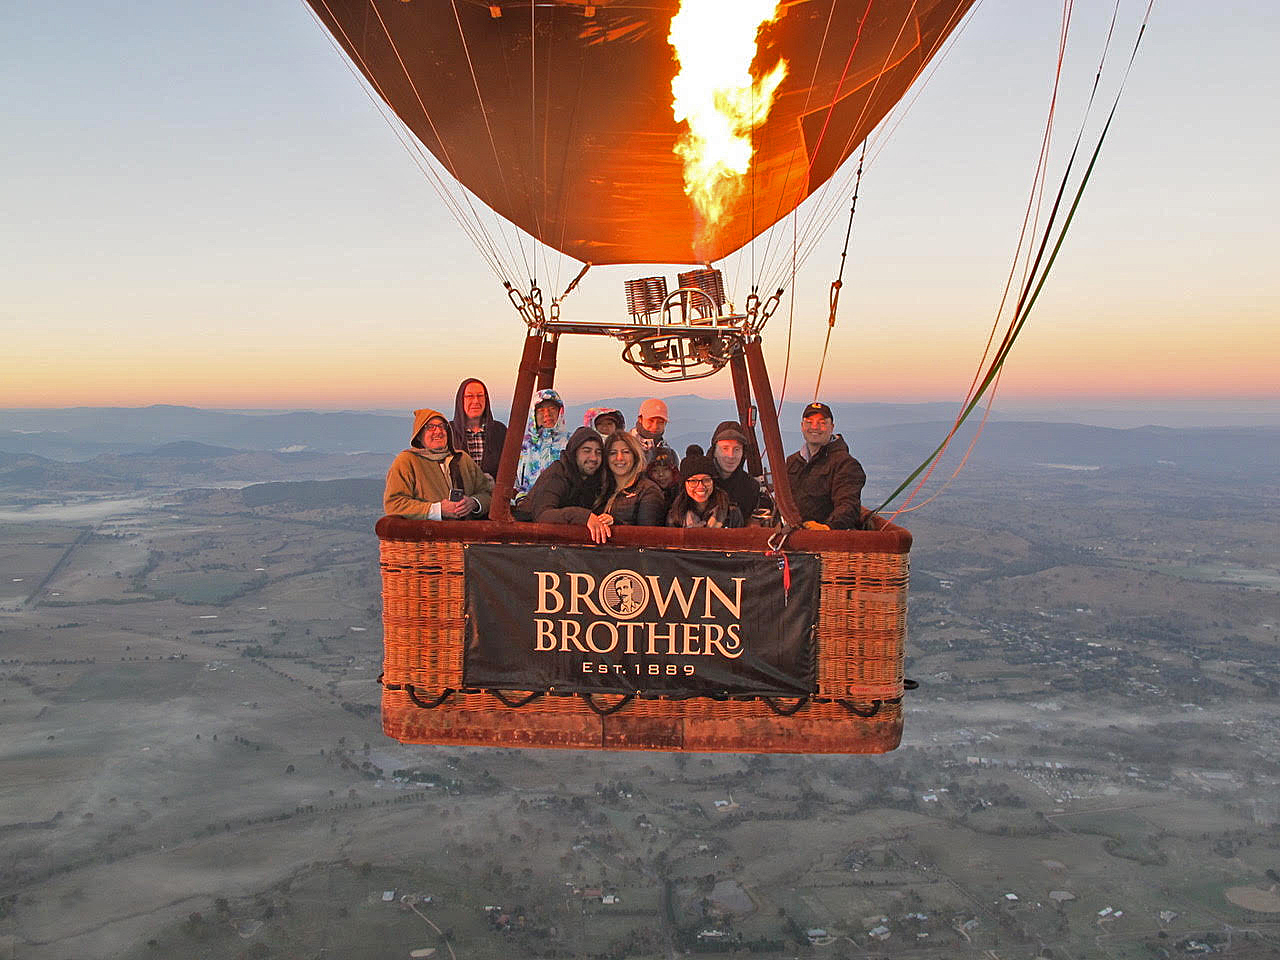 Mansfield Balloon Flight